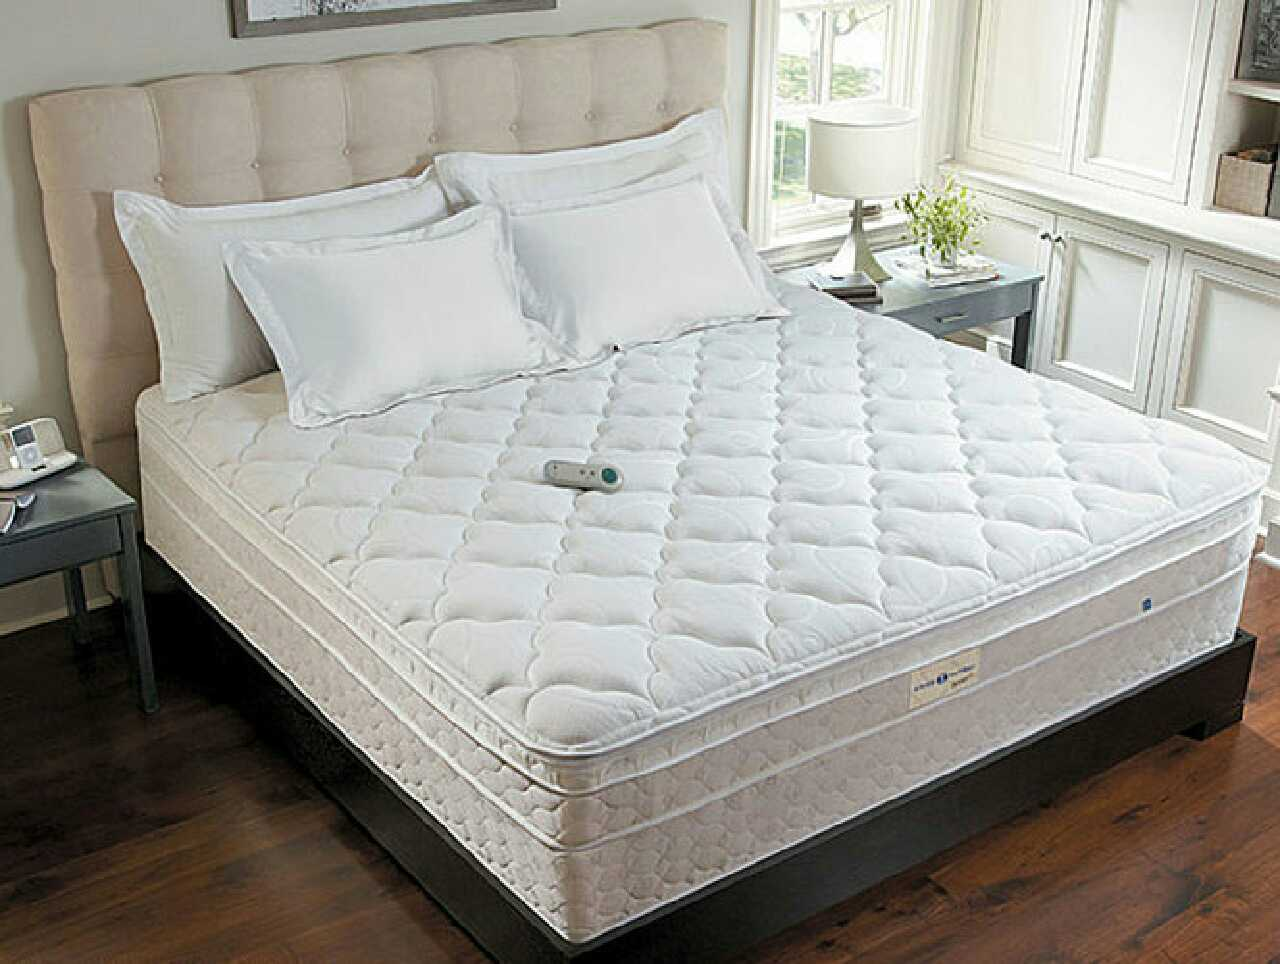 letgo used king pillow top bed for sale in idlewood il. Black Bedroom Furniture Sets. Home Design Ideas